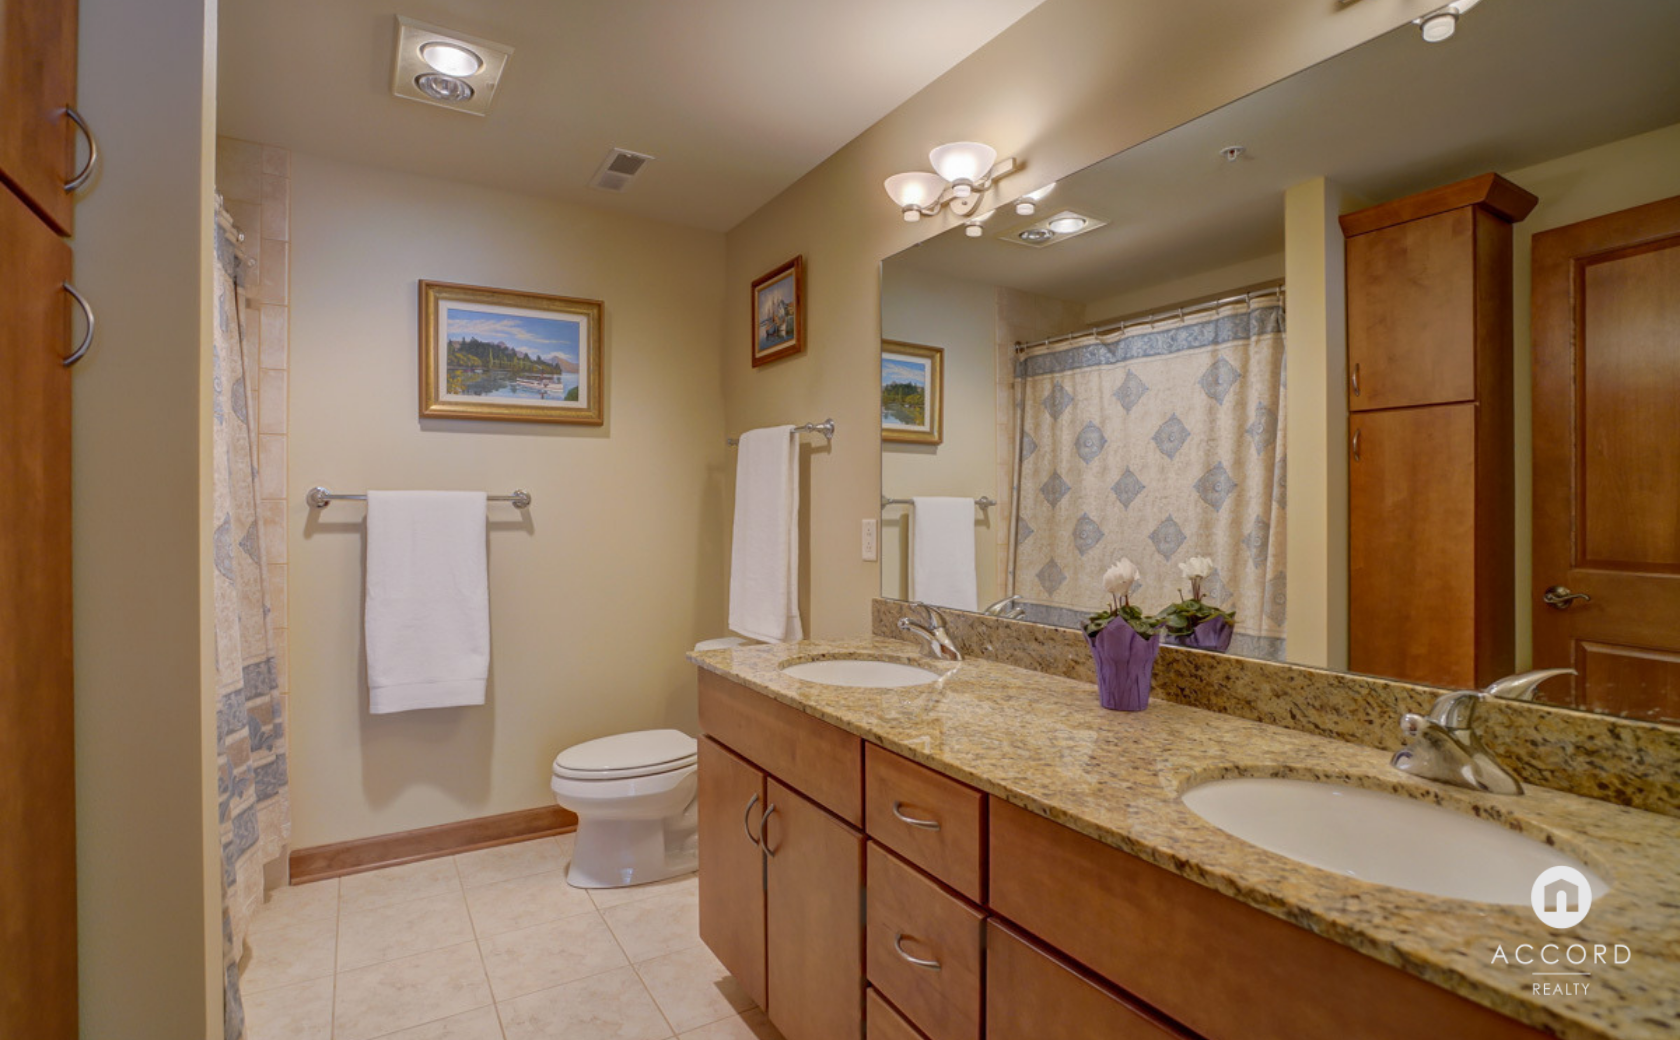 123 W Washington Ave #303 Madison, WI 53703 - Master Bath.png